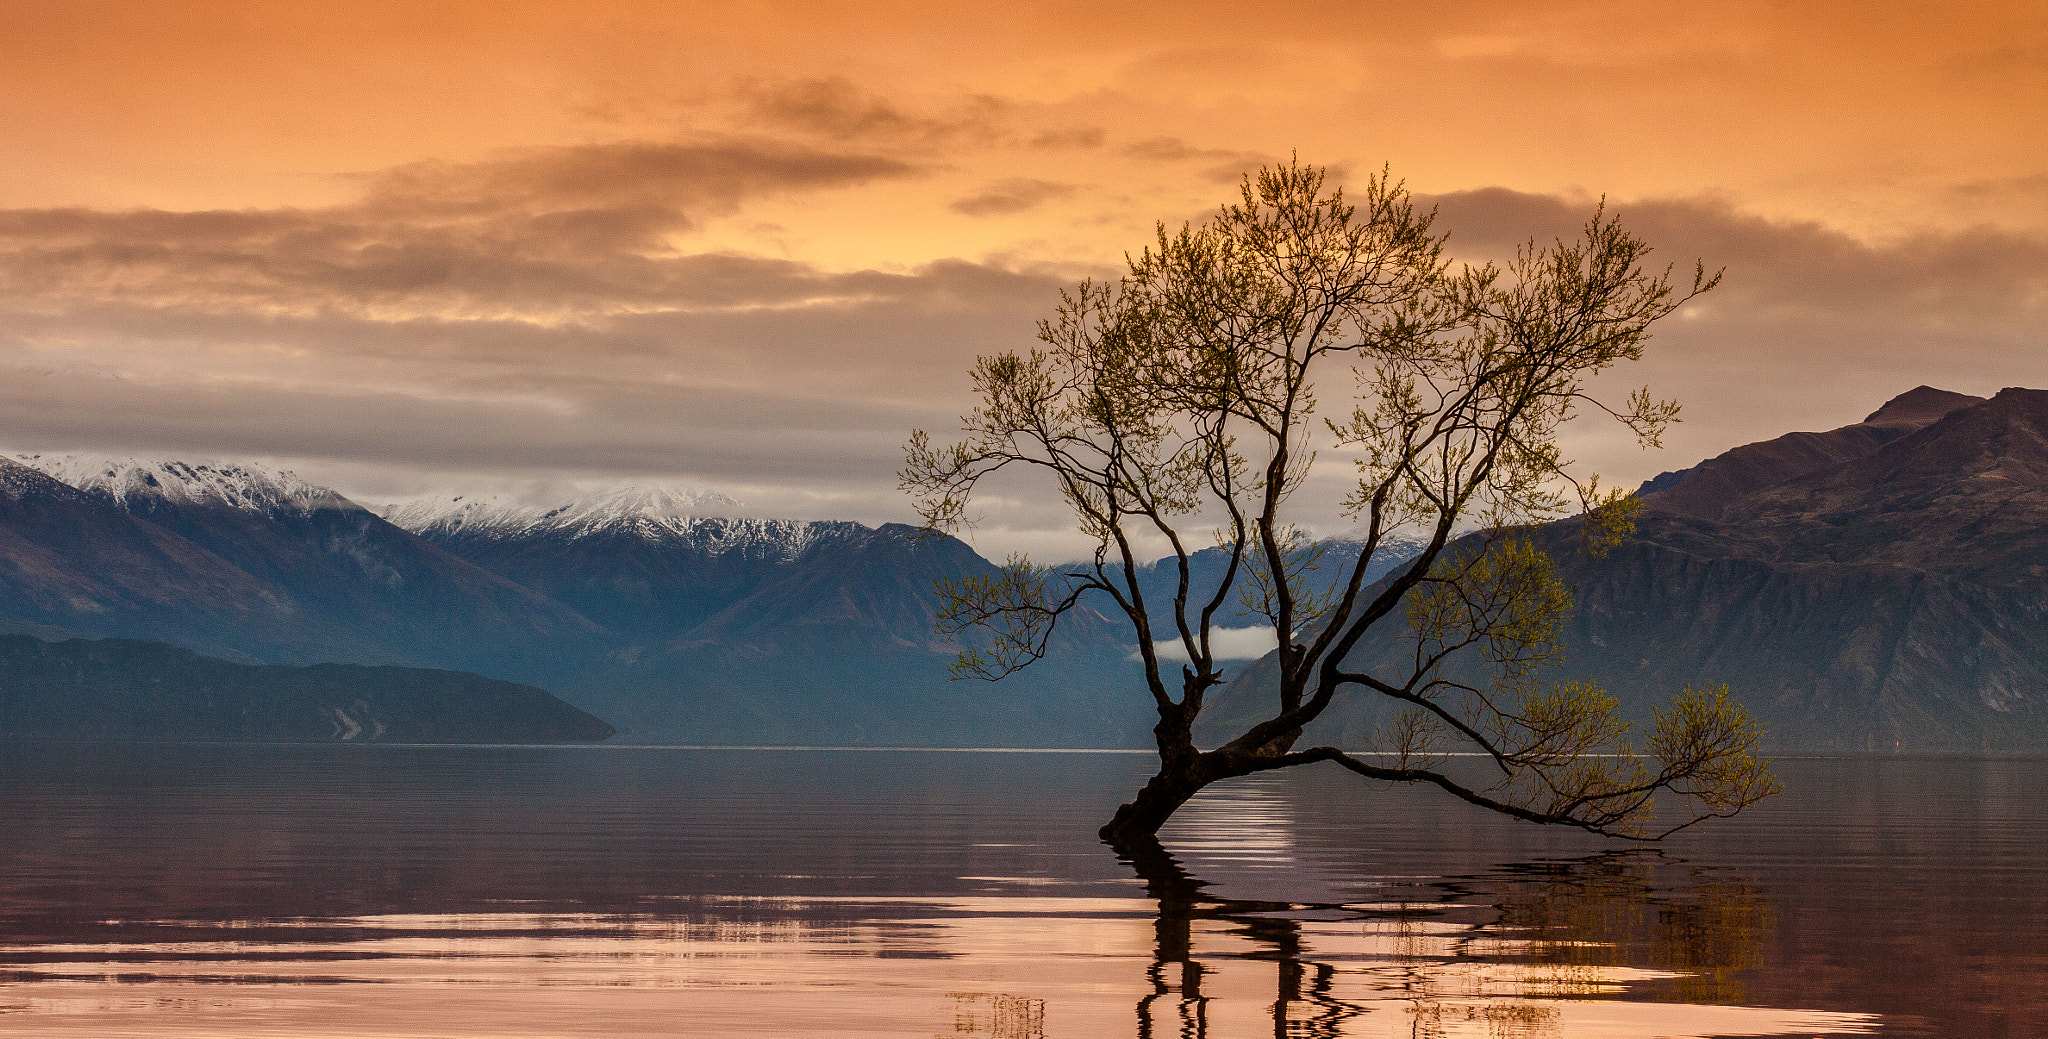 Photograph 'The Lake Tree' by Jason Rosewarne on 500px